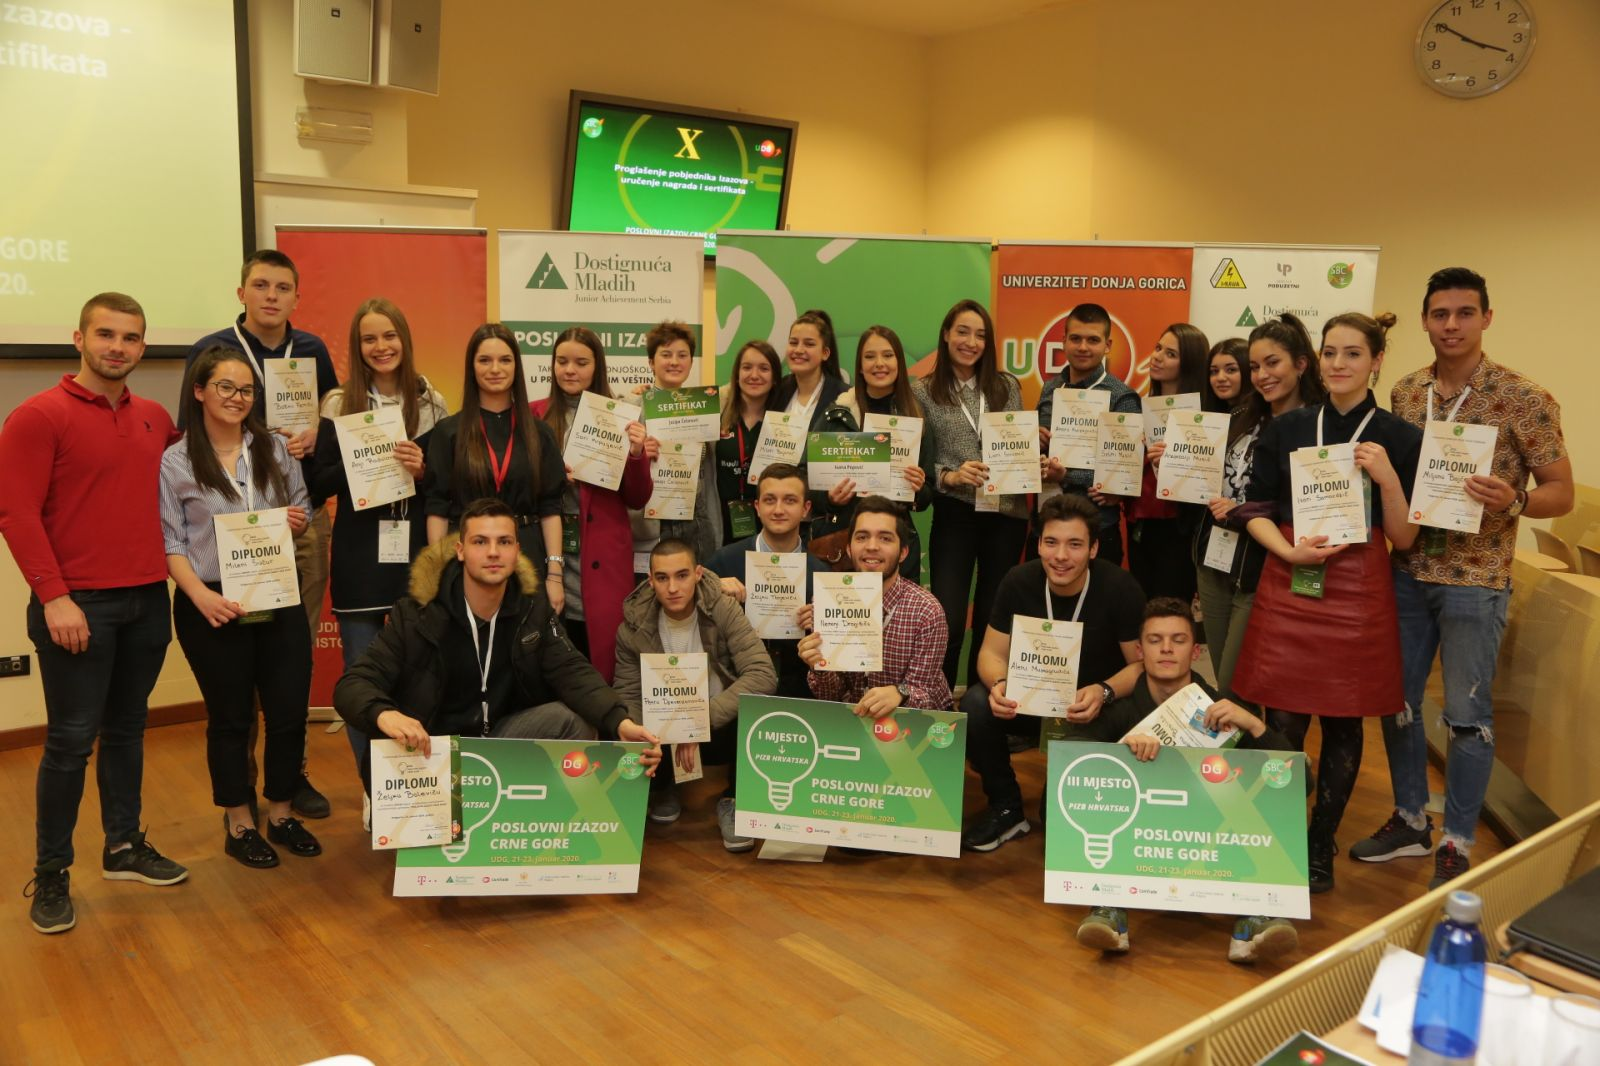 X UDG School of entrepreneurship and innovation for the young